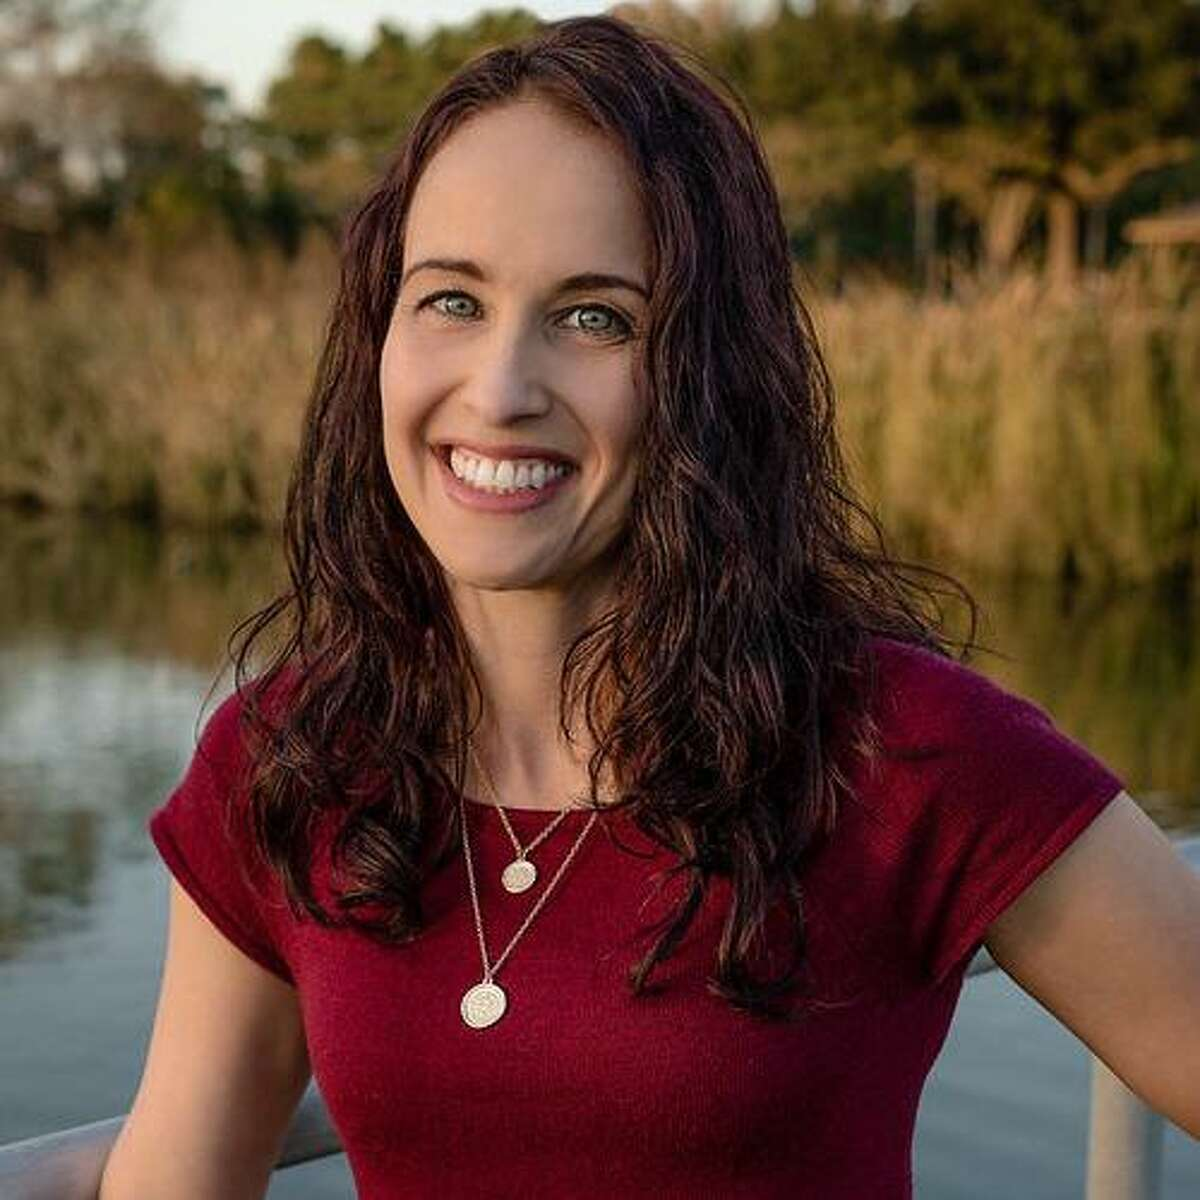 Communication specialist Christine Parizo is running against financial and accounting analyst Keith Esthay and incumbent Jay Cunningham for Clear Creek ISD Position 5.